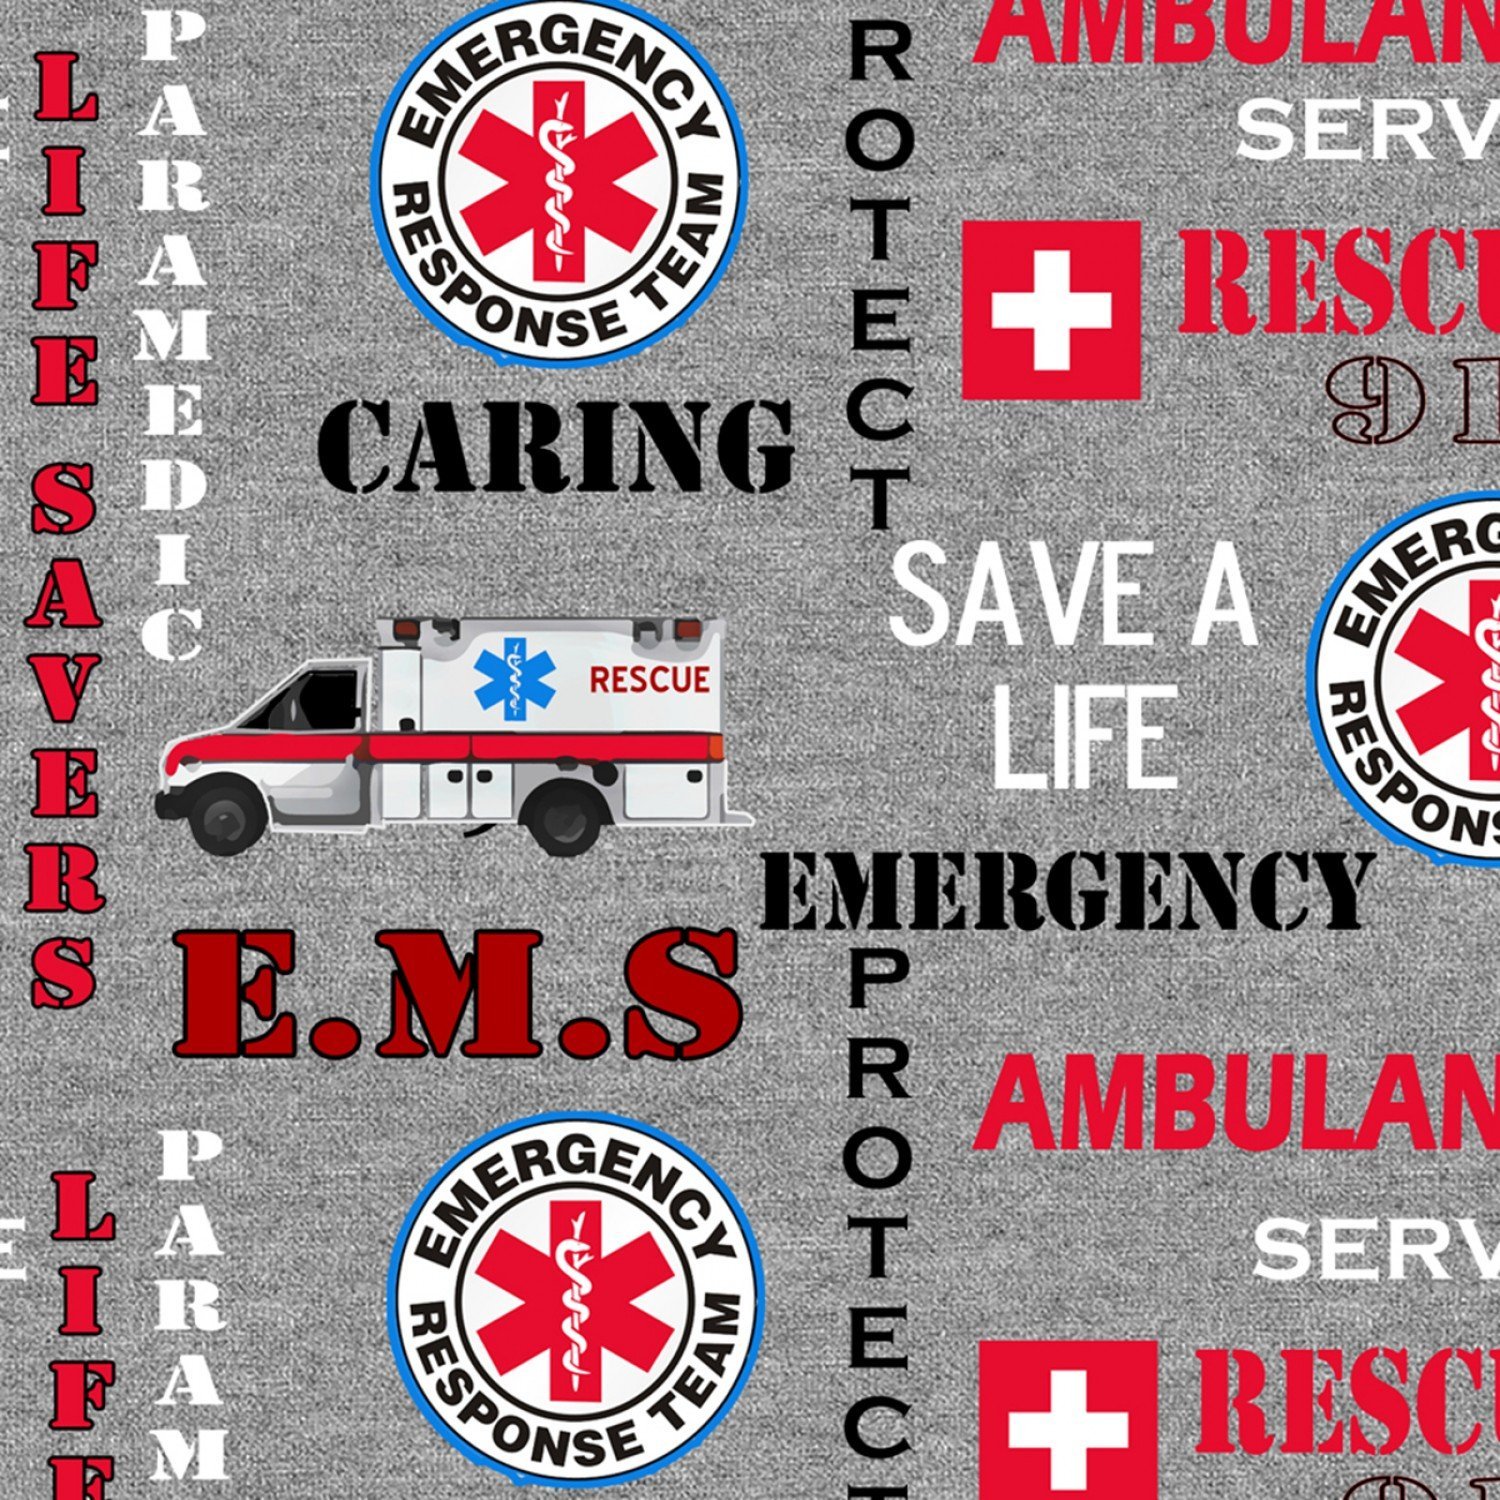 Sykel-EMS Cotton 1181 Rescue 911 Emergency Seal Heather Print